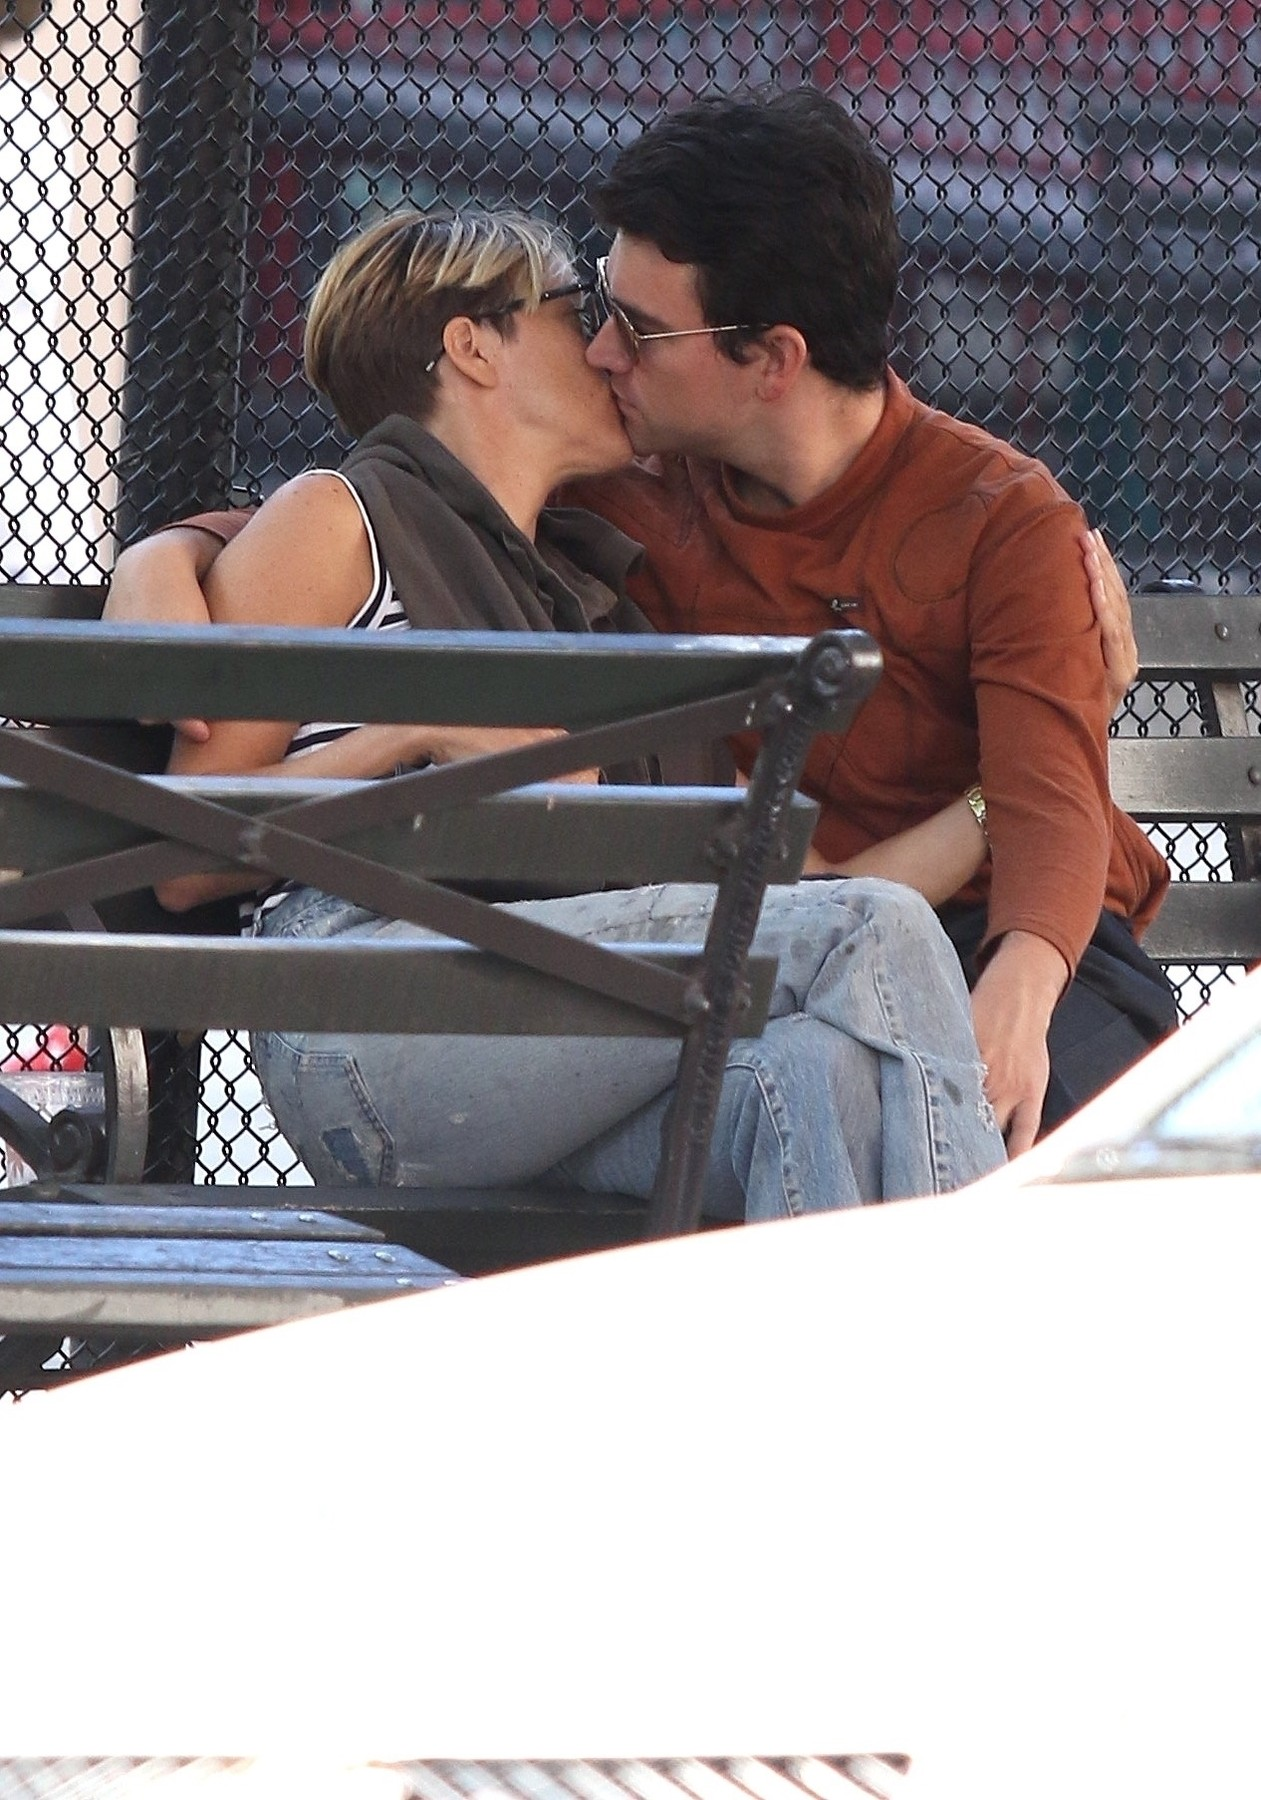 New York City, NY  - Actress, Chloe Sevigny sports a pixie-cut and is seen kissing and showing some PDA with unidentified boyfriend on a park bench in Manhattan's Soho area.  BACKGRID USA 25 AUGUST 2019, Image: 467274964, License: Rights-managed, Restrictions: , Model Release: no, Credit line: BrosNYC / BACKGRID / Backgrid USA / Profimedia